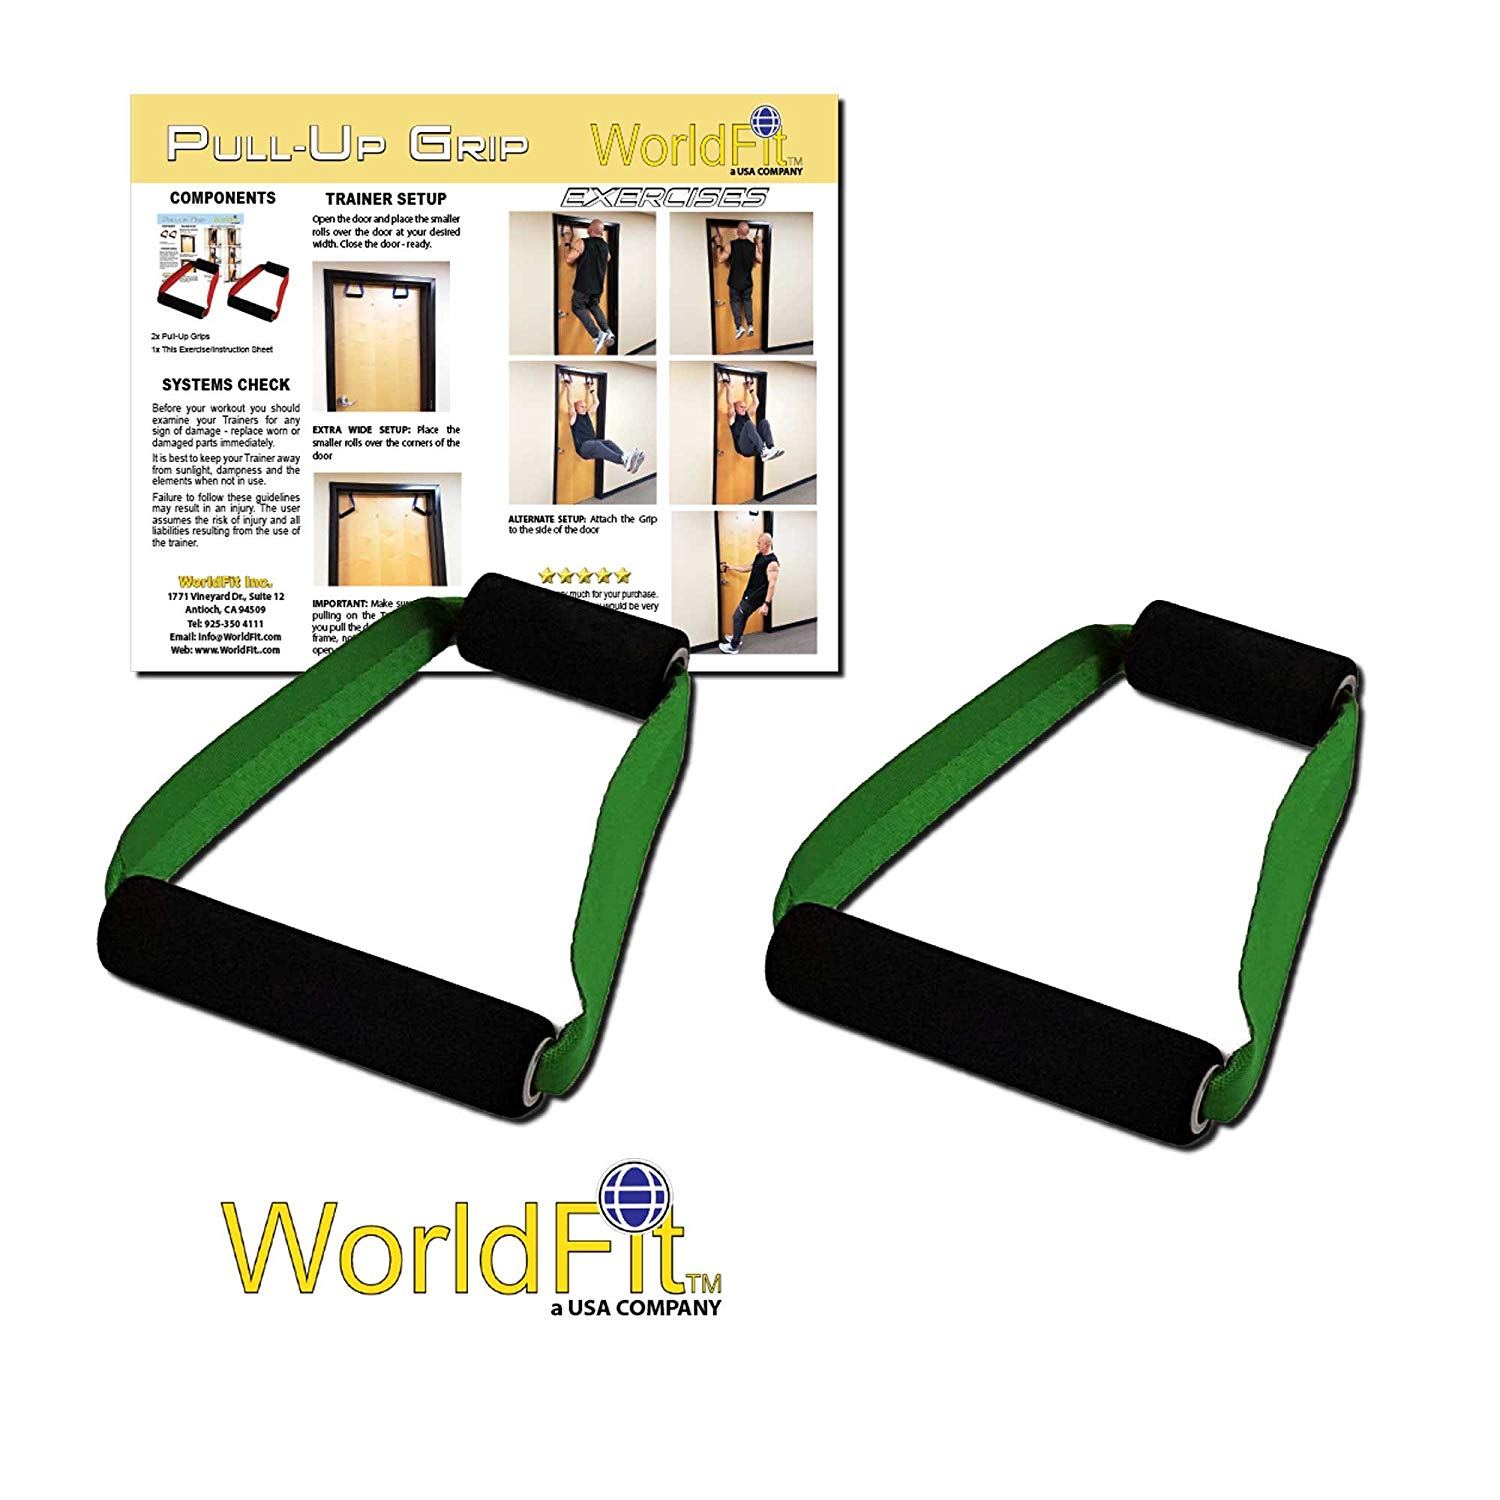 WorldFit Pull-Up Grips for Door in Home, Office and Hotel, Portable Pull Up Bar Home Gym (olive drab)